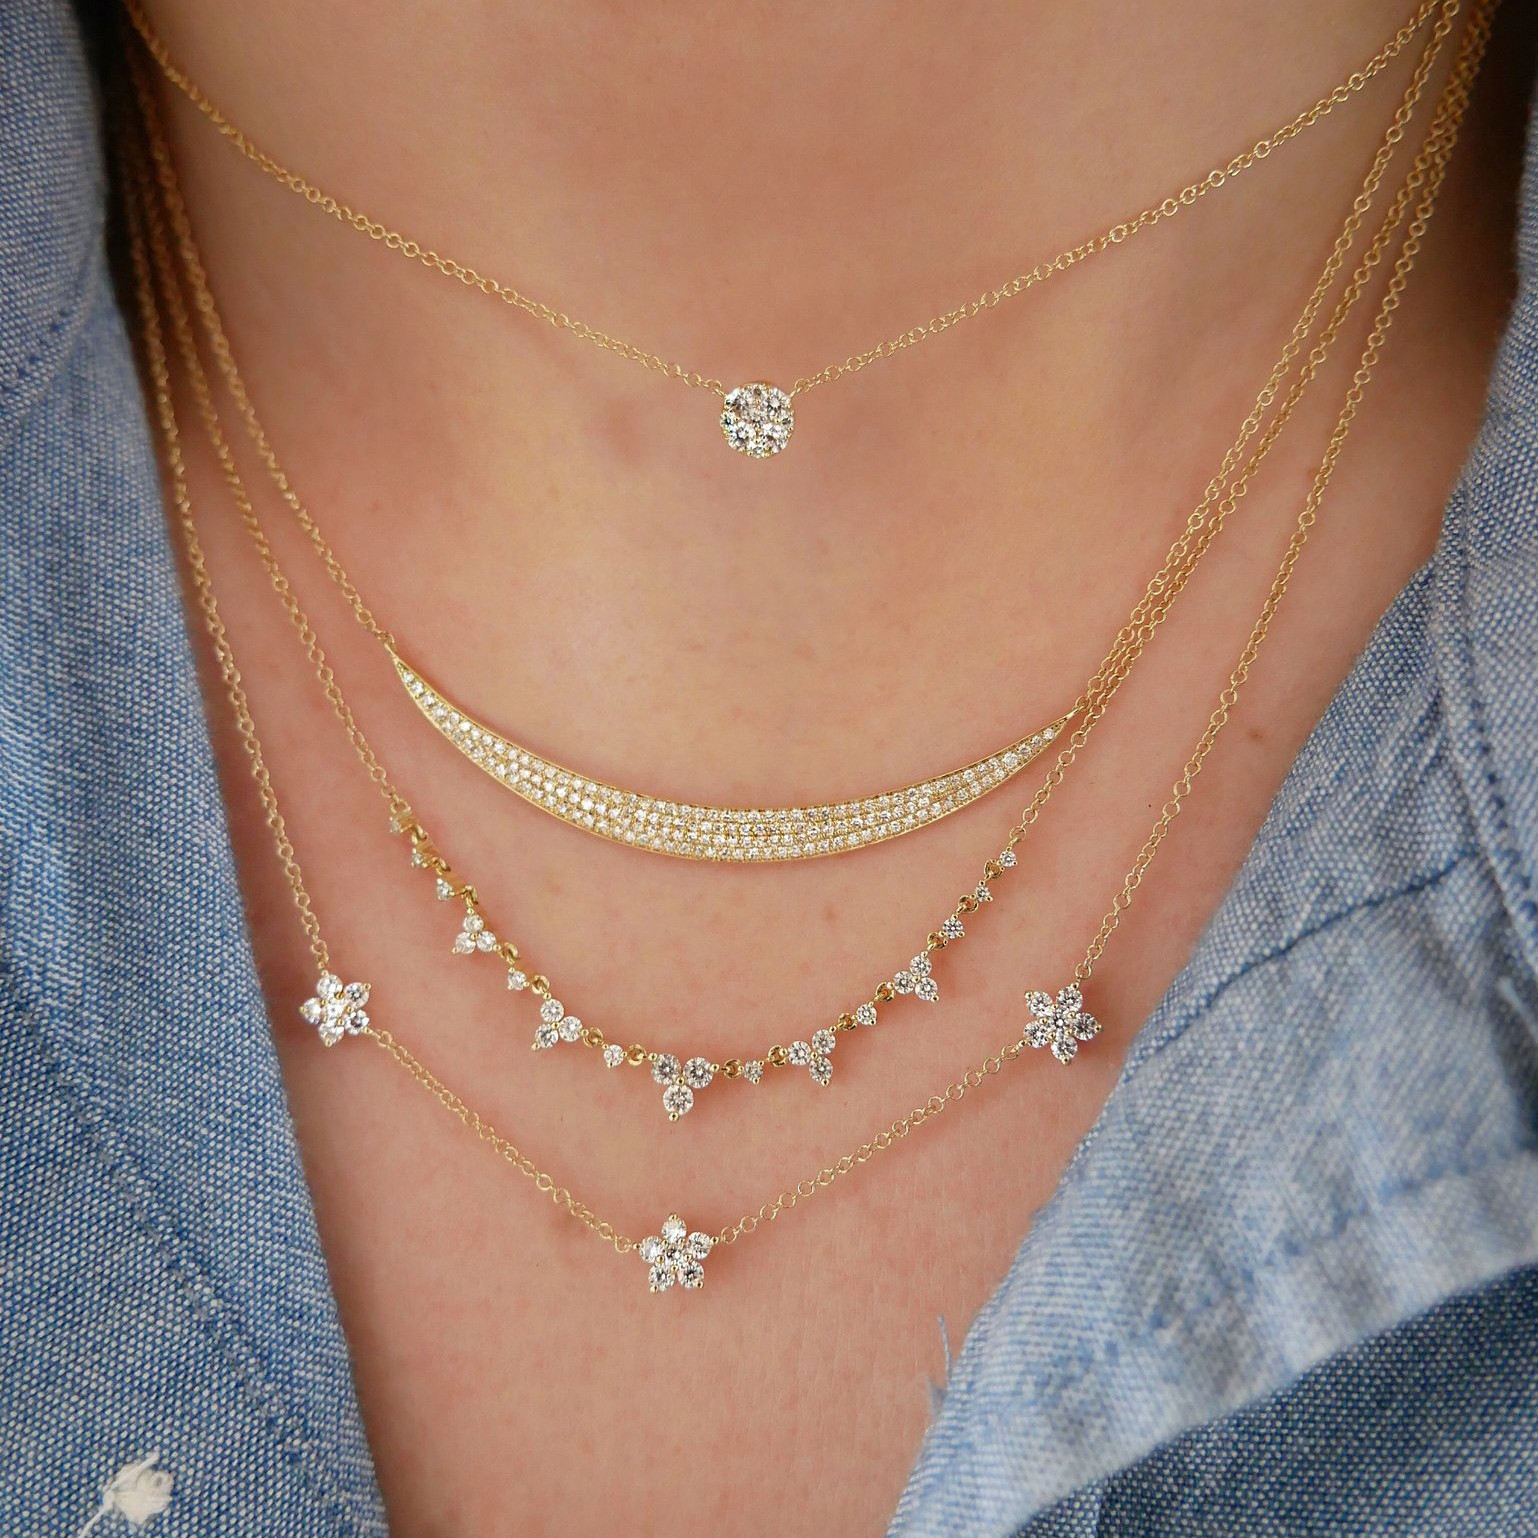 Triple Diamond Flower Station Necklace by EF Collection on Model